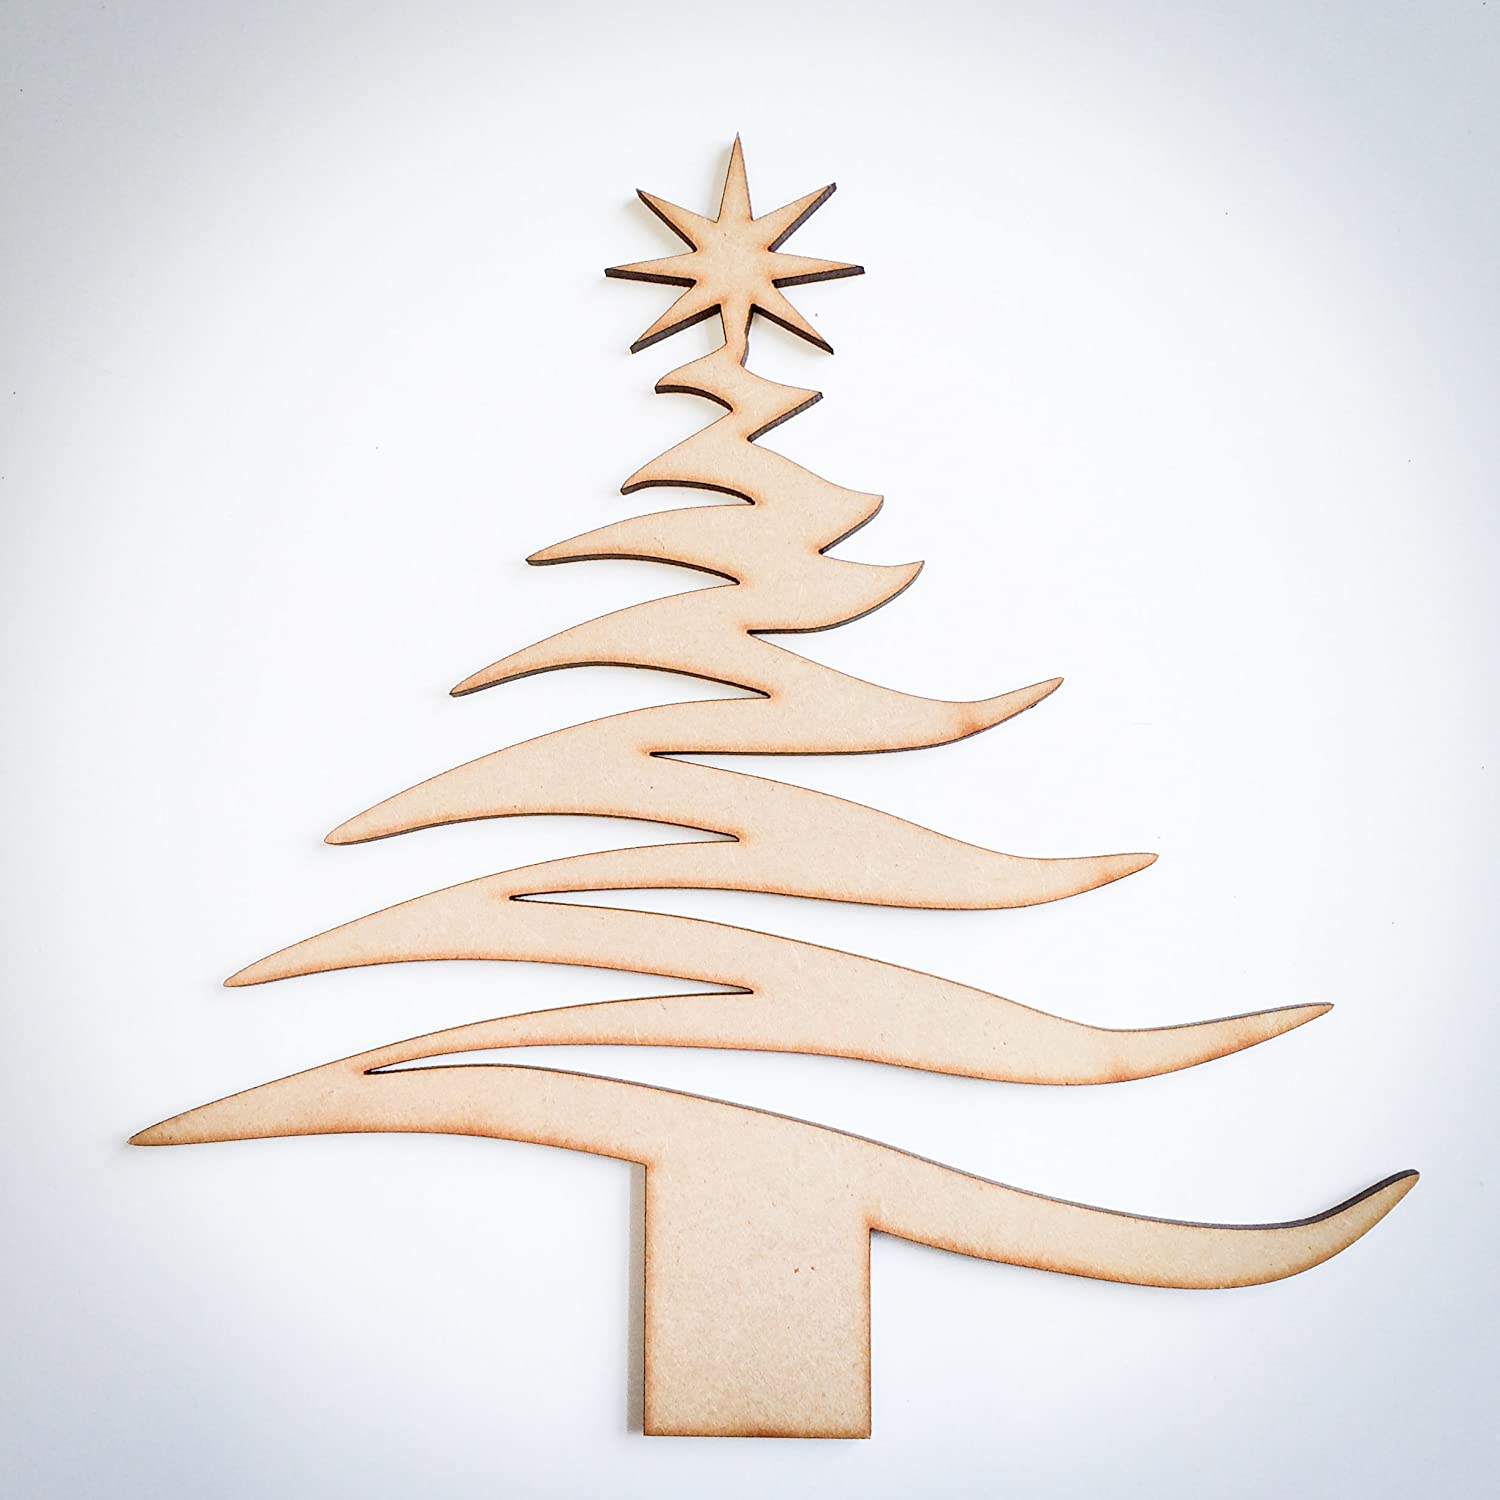 Wood christmas tree cutout - Wooden Christmas Tree Shape Craft Blank Tree Cut Out Amazon Co Uk Kitchen Home